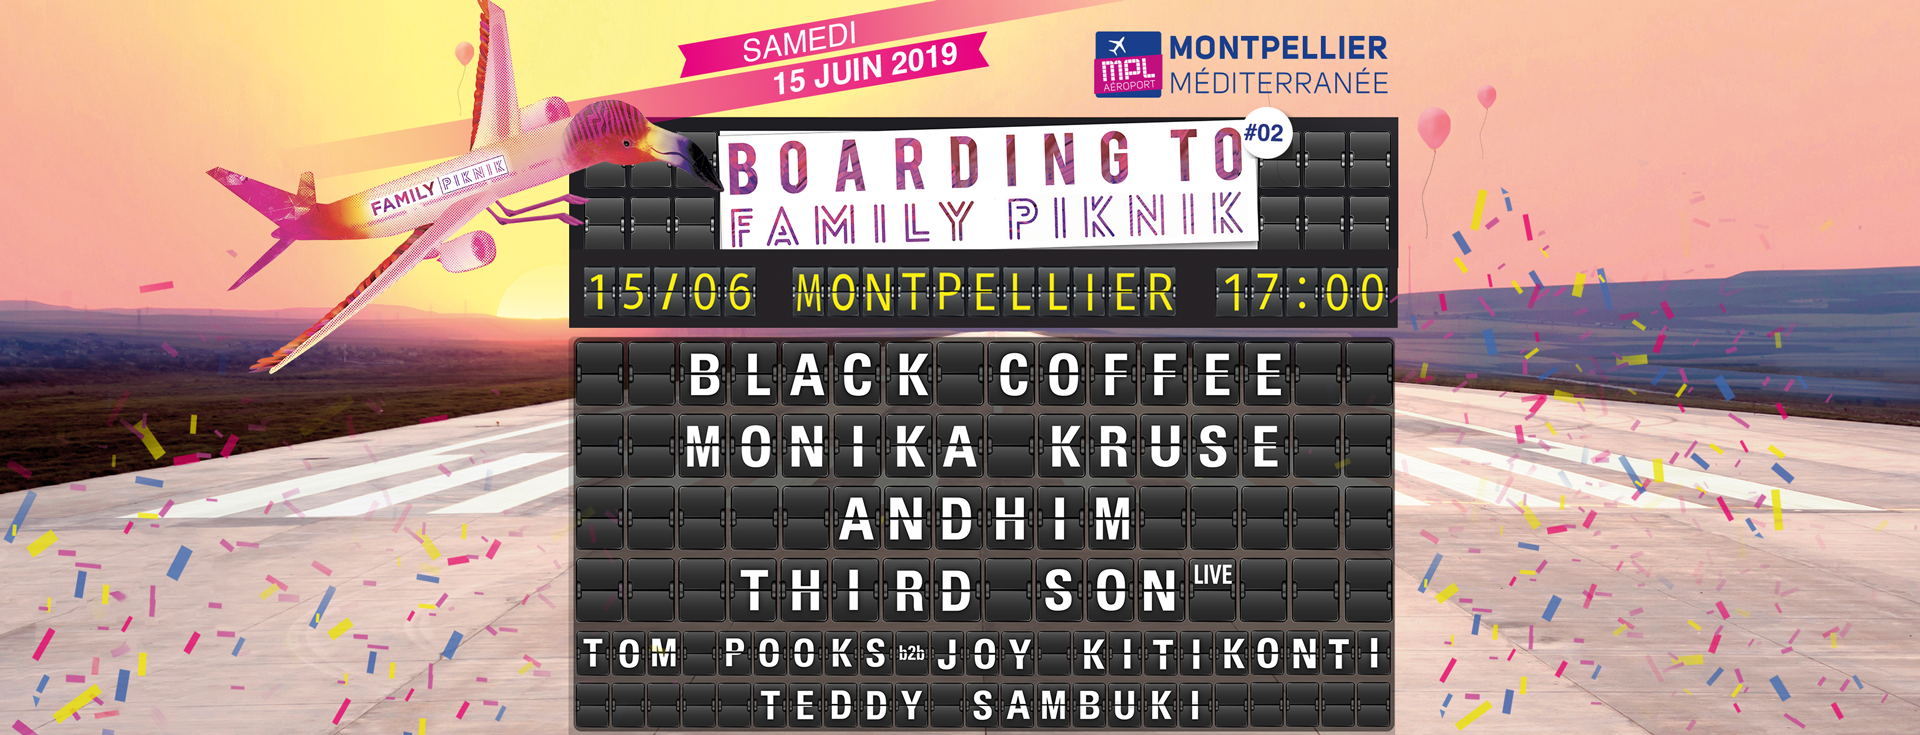 Boarding to Family Piknik 2019